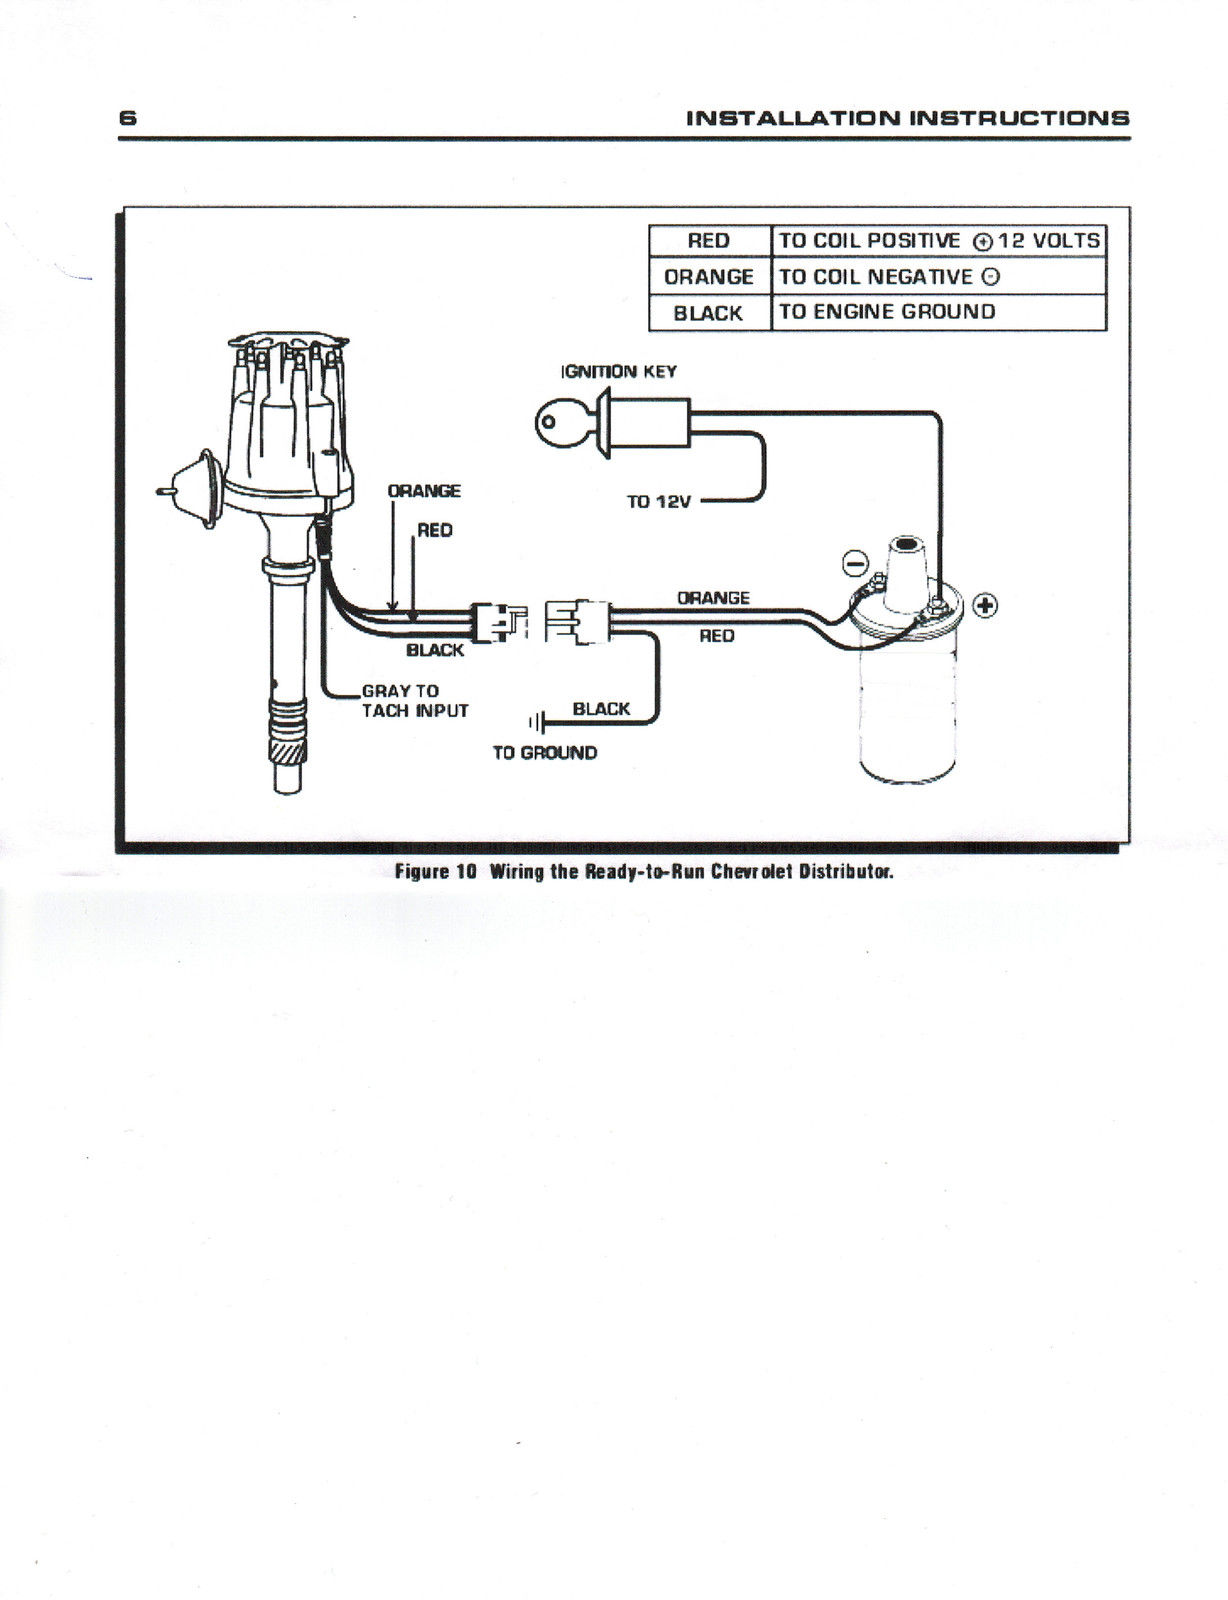 DIAGRAM] Msd Ford Ready To Run Distributor Wiring Diagram FULL Version HD  Quality Wiring Diagram - REACTIONPT.MAI-LIE.FRreactionpt.mai-lie.fr